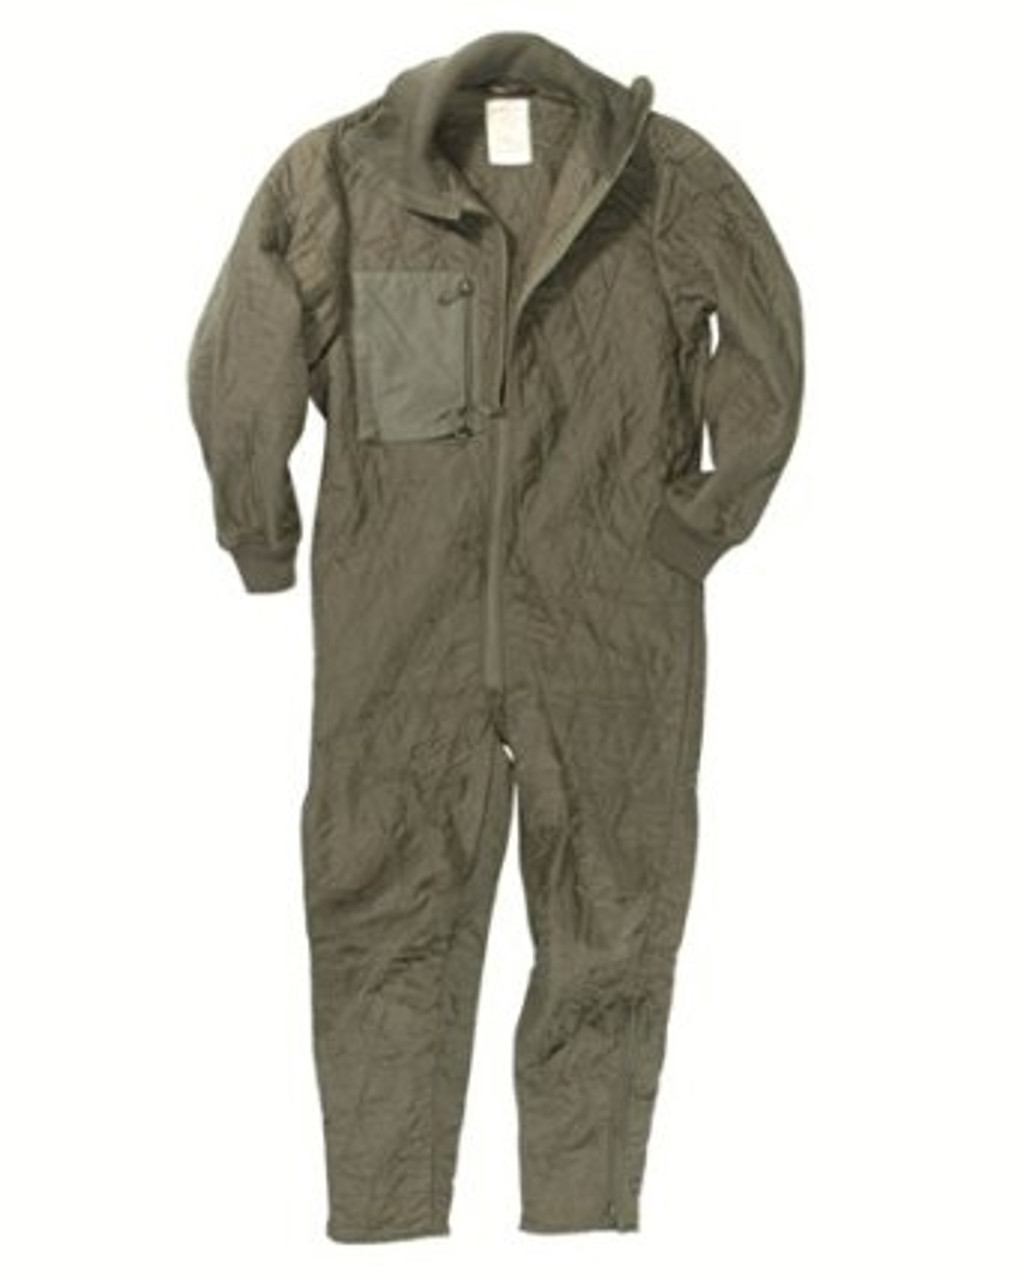 BW OD Tanker Coverall Liner from Hessen Surplus